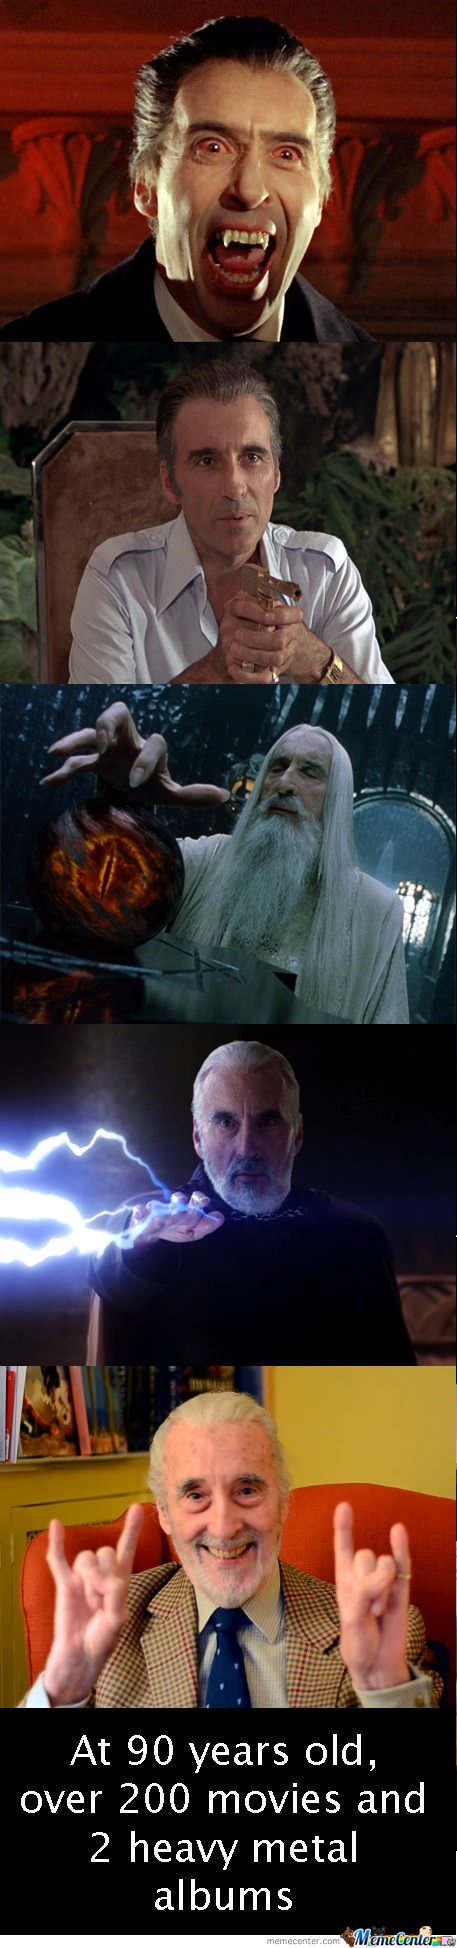 Just Christopher Lee